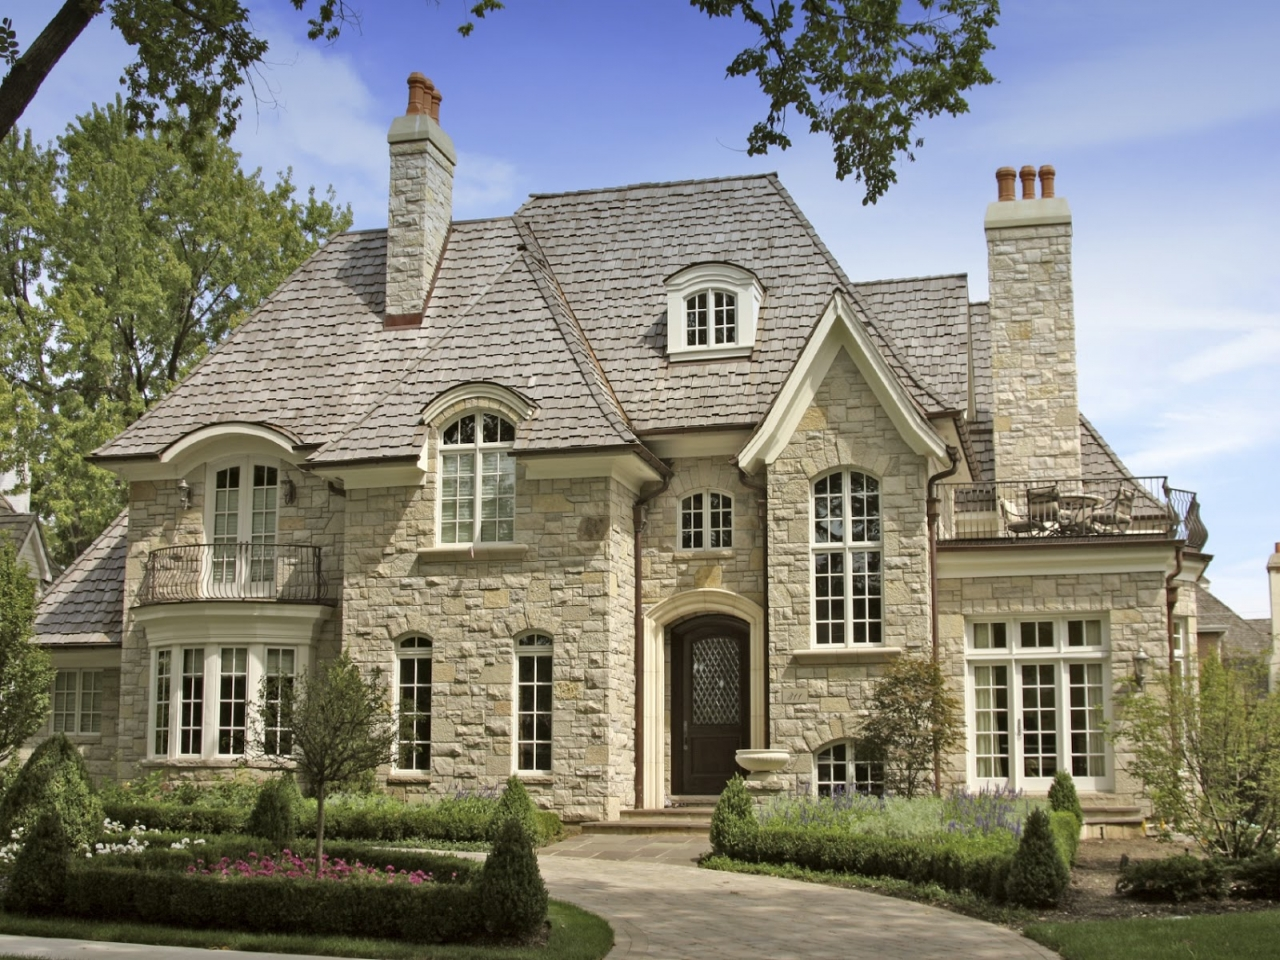 Luxury stonehouse stone luxury house plans country dream for Luxury country house plans